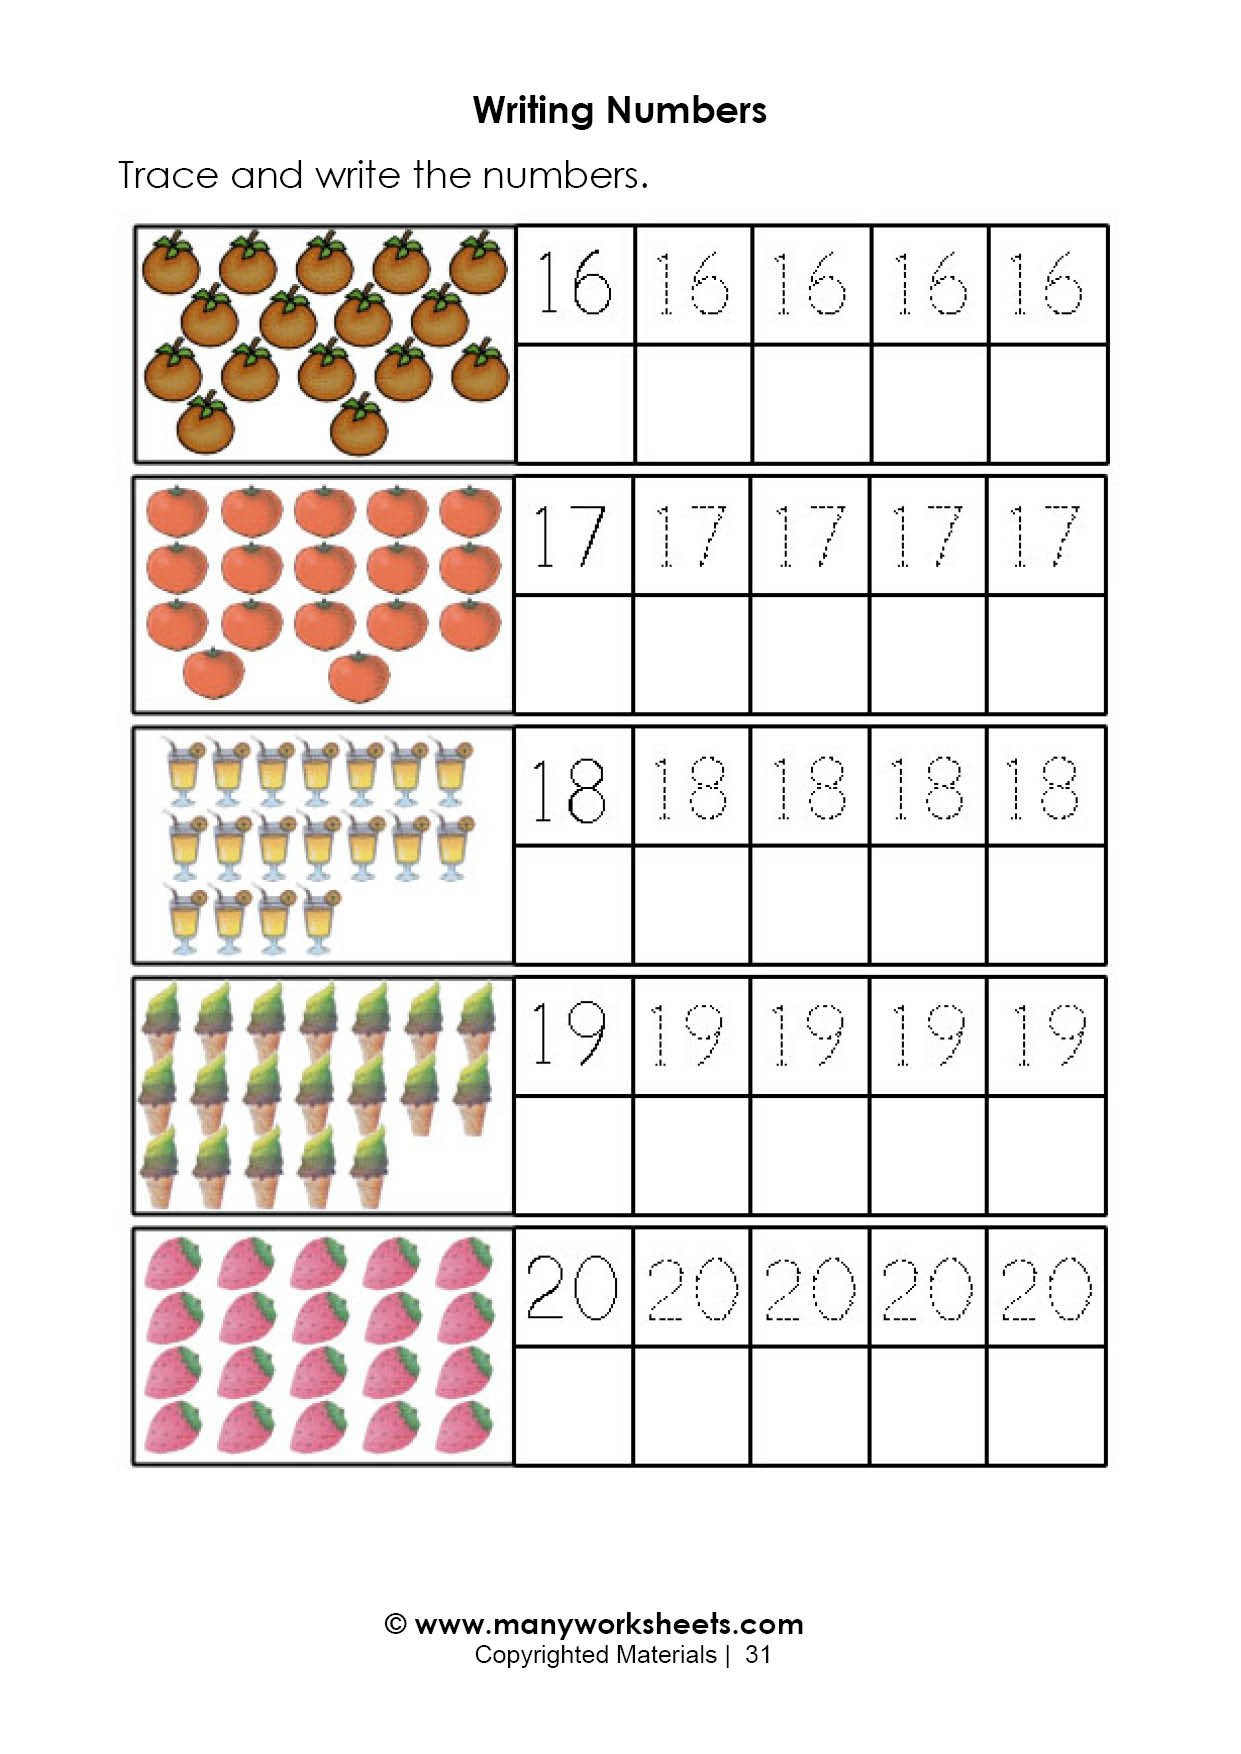 Number Recognition Worksheets 1 20 Tracing and Handwriting Numbers 16 20 Worksheet